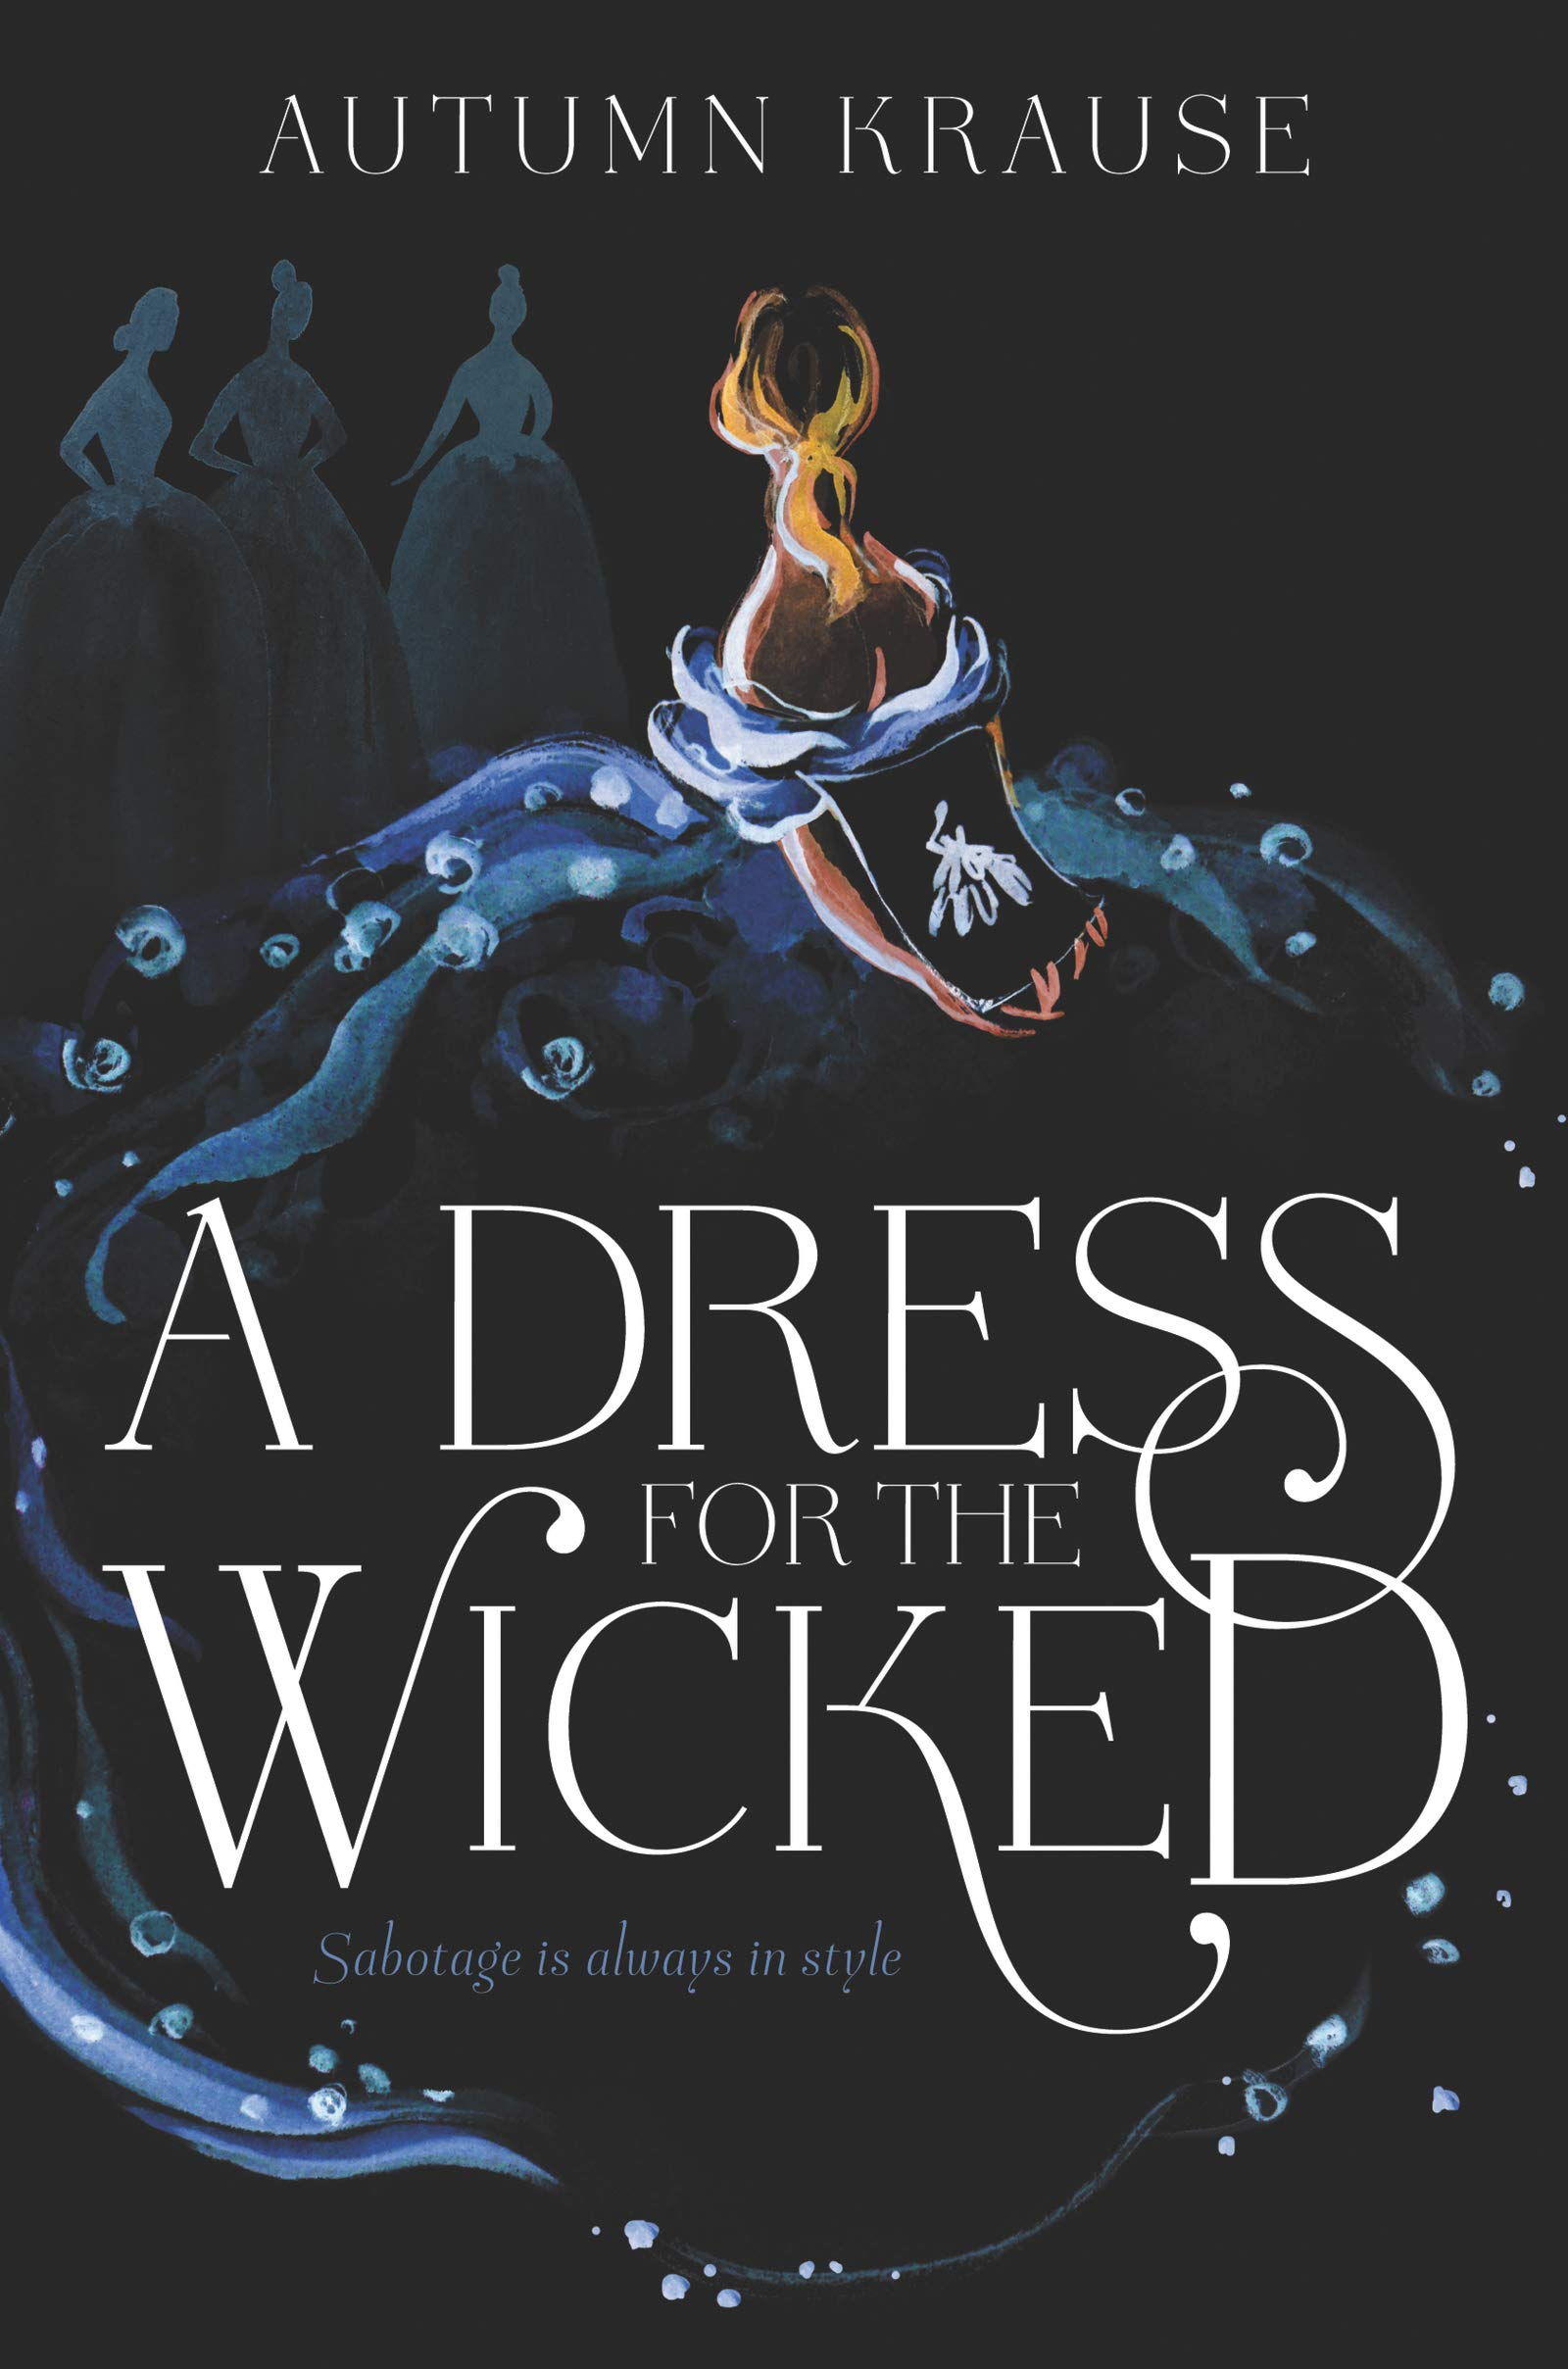 Title:  A Dress for the Wicked , Author: Autumn Krause, Publisher: HarperTeen, Publish Date: August 6, 2019; Genres + Tags: YA, Young Adult, Historical Fiction, Fantasy, YA Historical Fantasy, Fashion